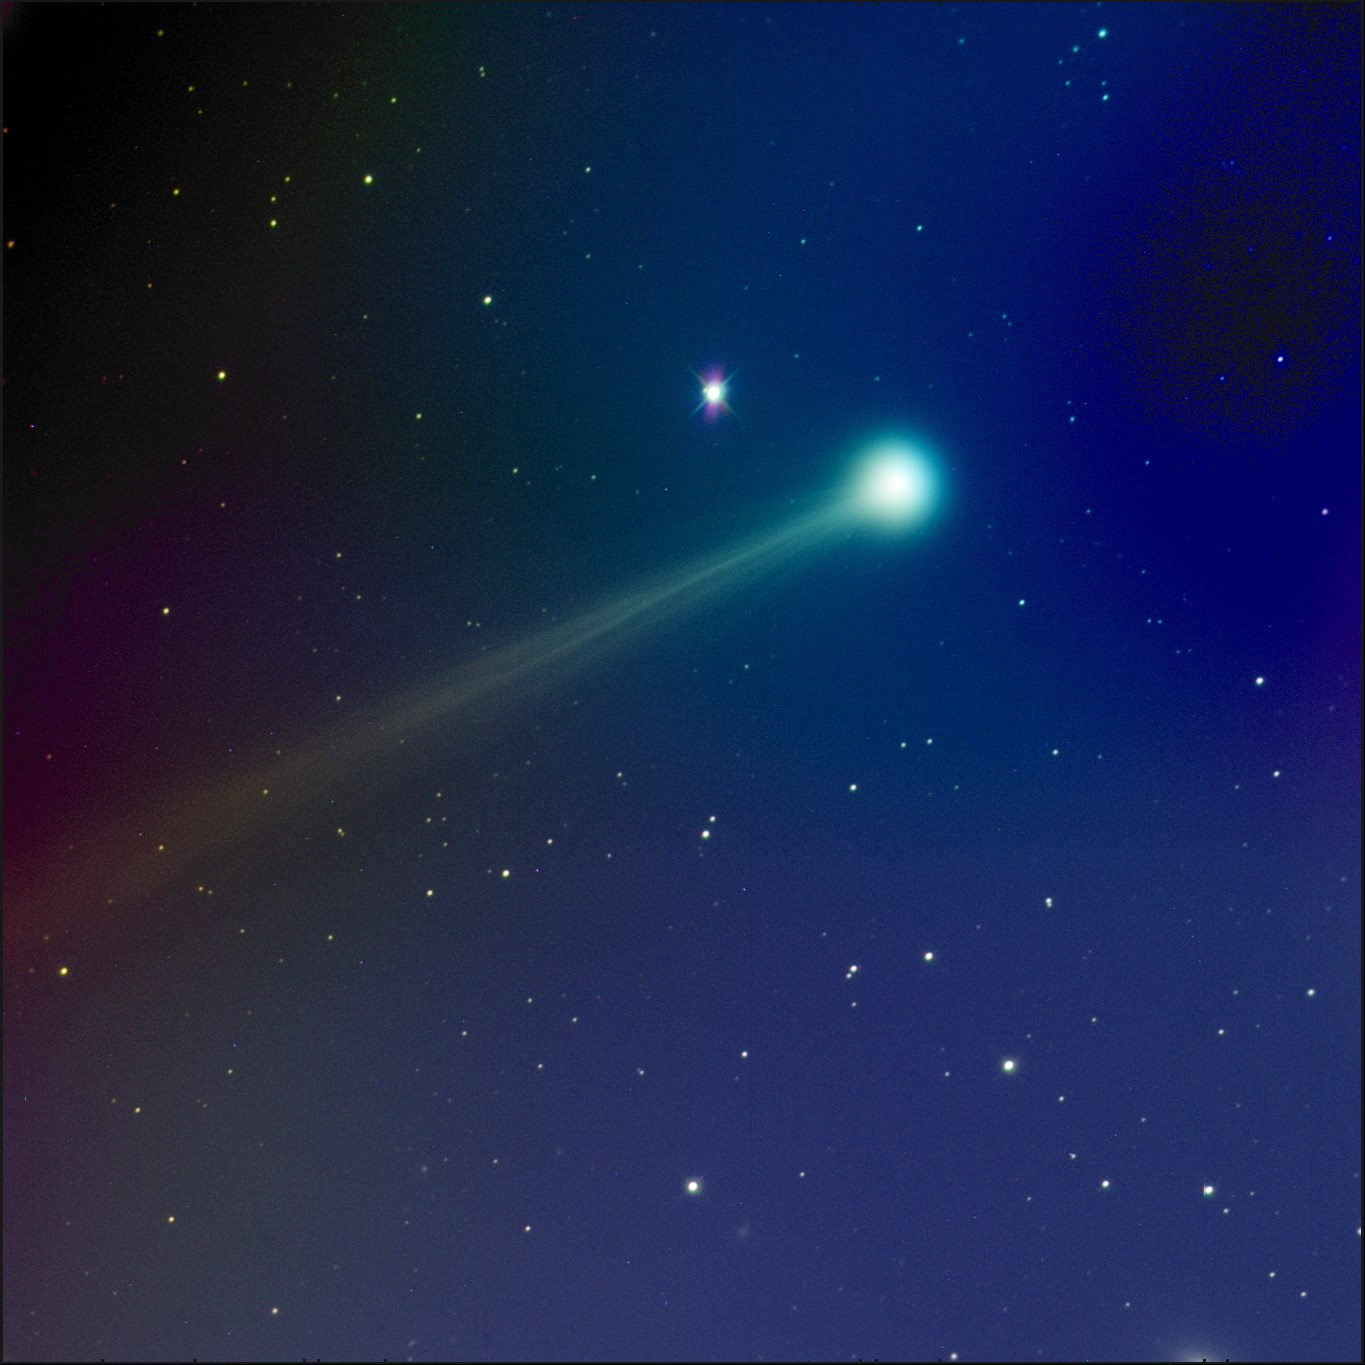 Comet ISON in outburst! Brightens a magnitude or more ...